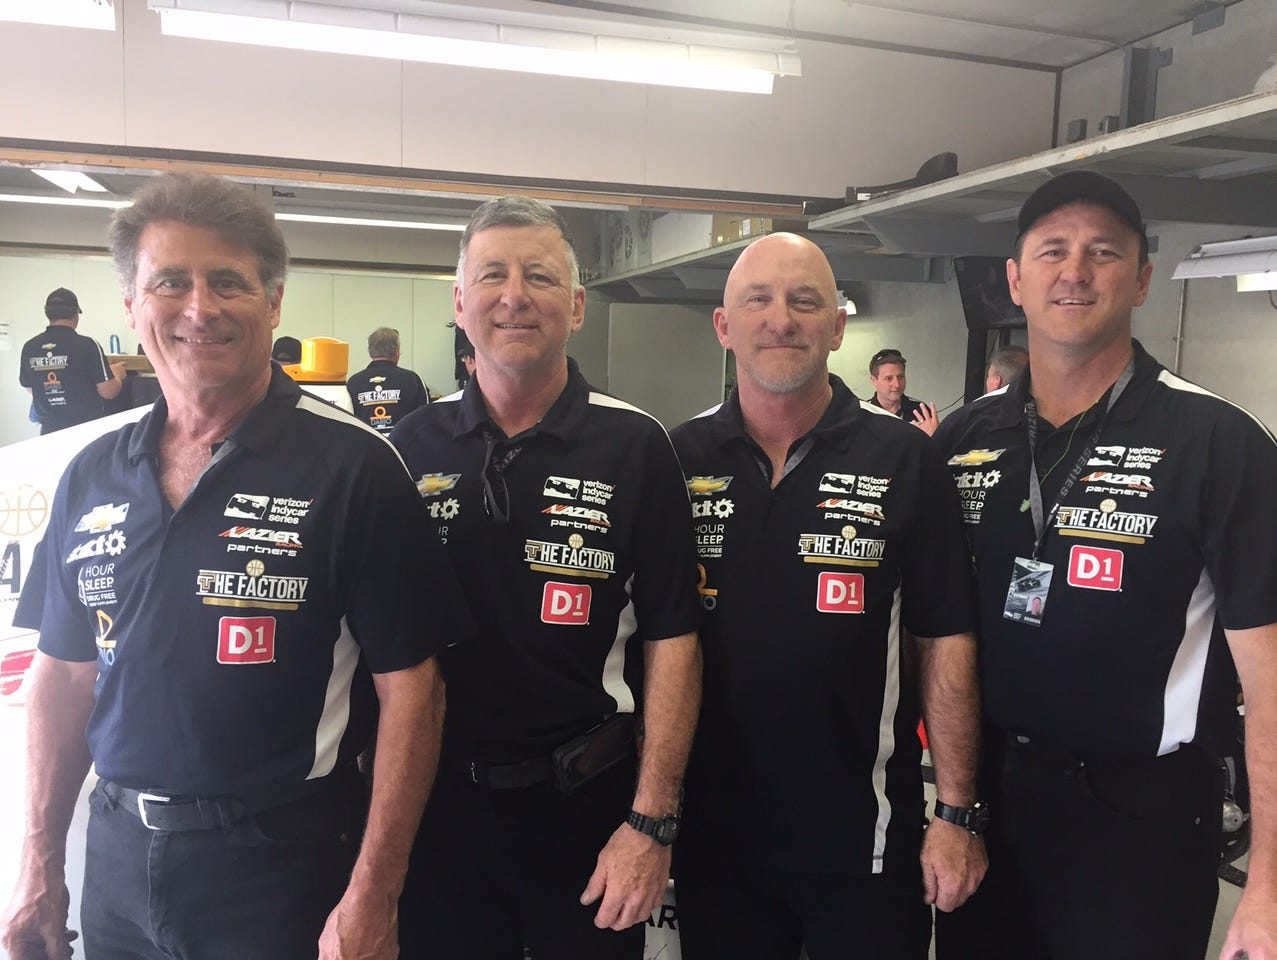 The four Caudle brothers, all firefighters from Texas, will be working in Buddy Lazier's pit crew during Sunday's Indianapolis 500. It will be the first time they have done the work during a race. From left are Jim, 57; Bob, 55; Ken, 53; Craig, 46.